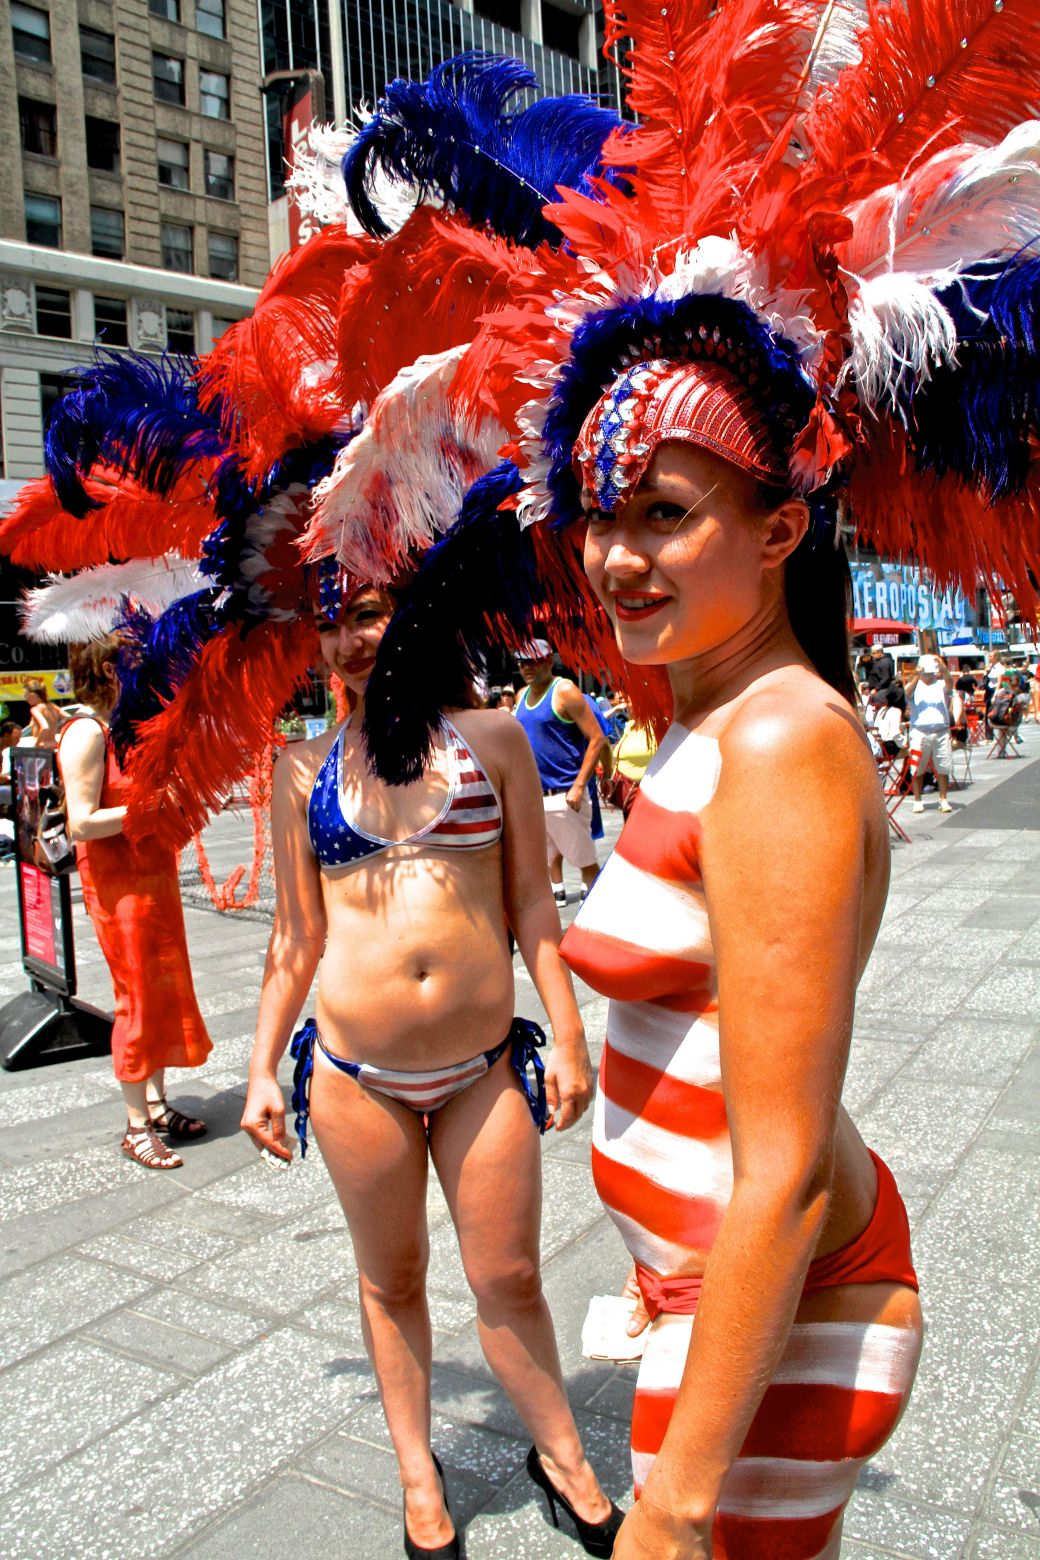 new york city times square woman in bikini naked woman 2